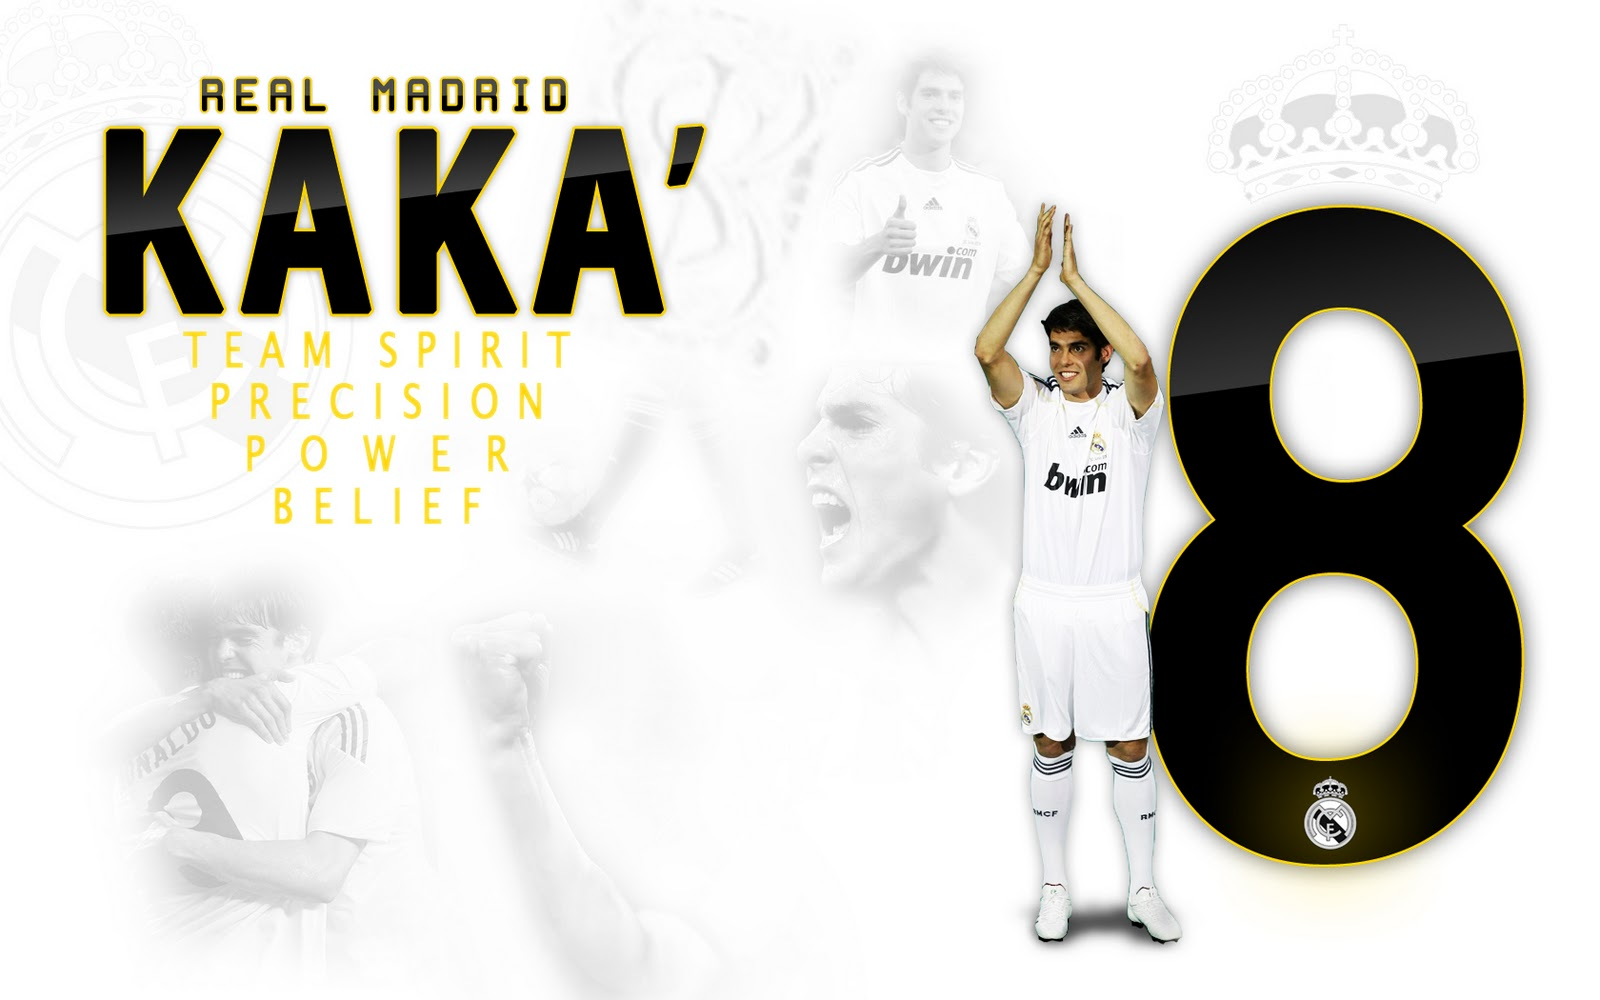 http://2.bp.blogspot.com/-3GM_1PAPs6A/TwnMf9rmWFI/AAAAAAAAElQ/VPO-WoBwP-g/s1600/Ricardo+Kaka+Real+madrid+wallpapers+for+desktop+2012+full+HD+3.jpg